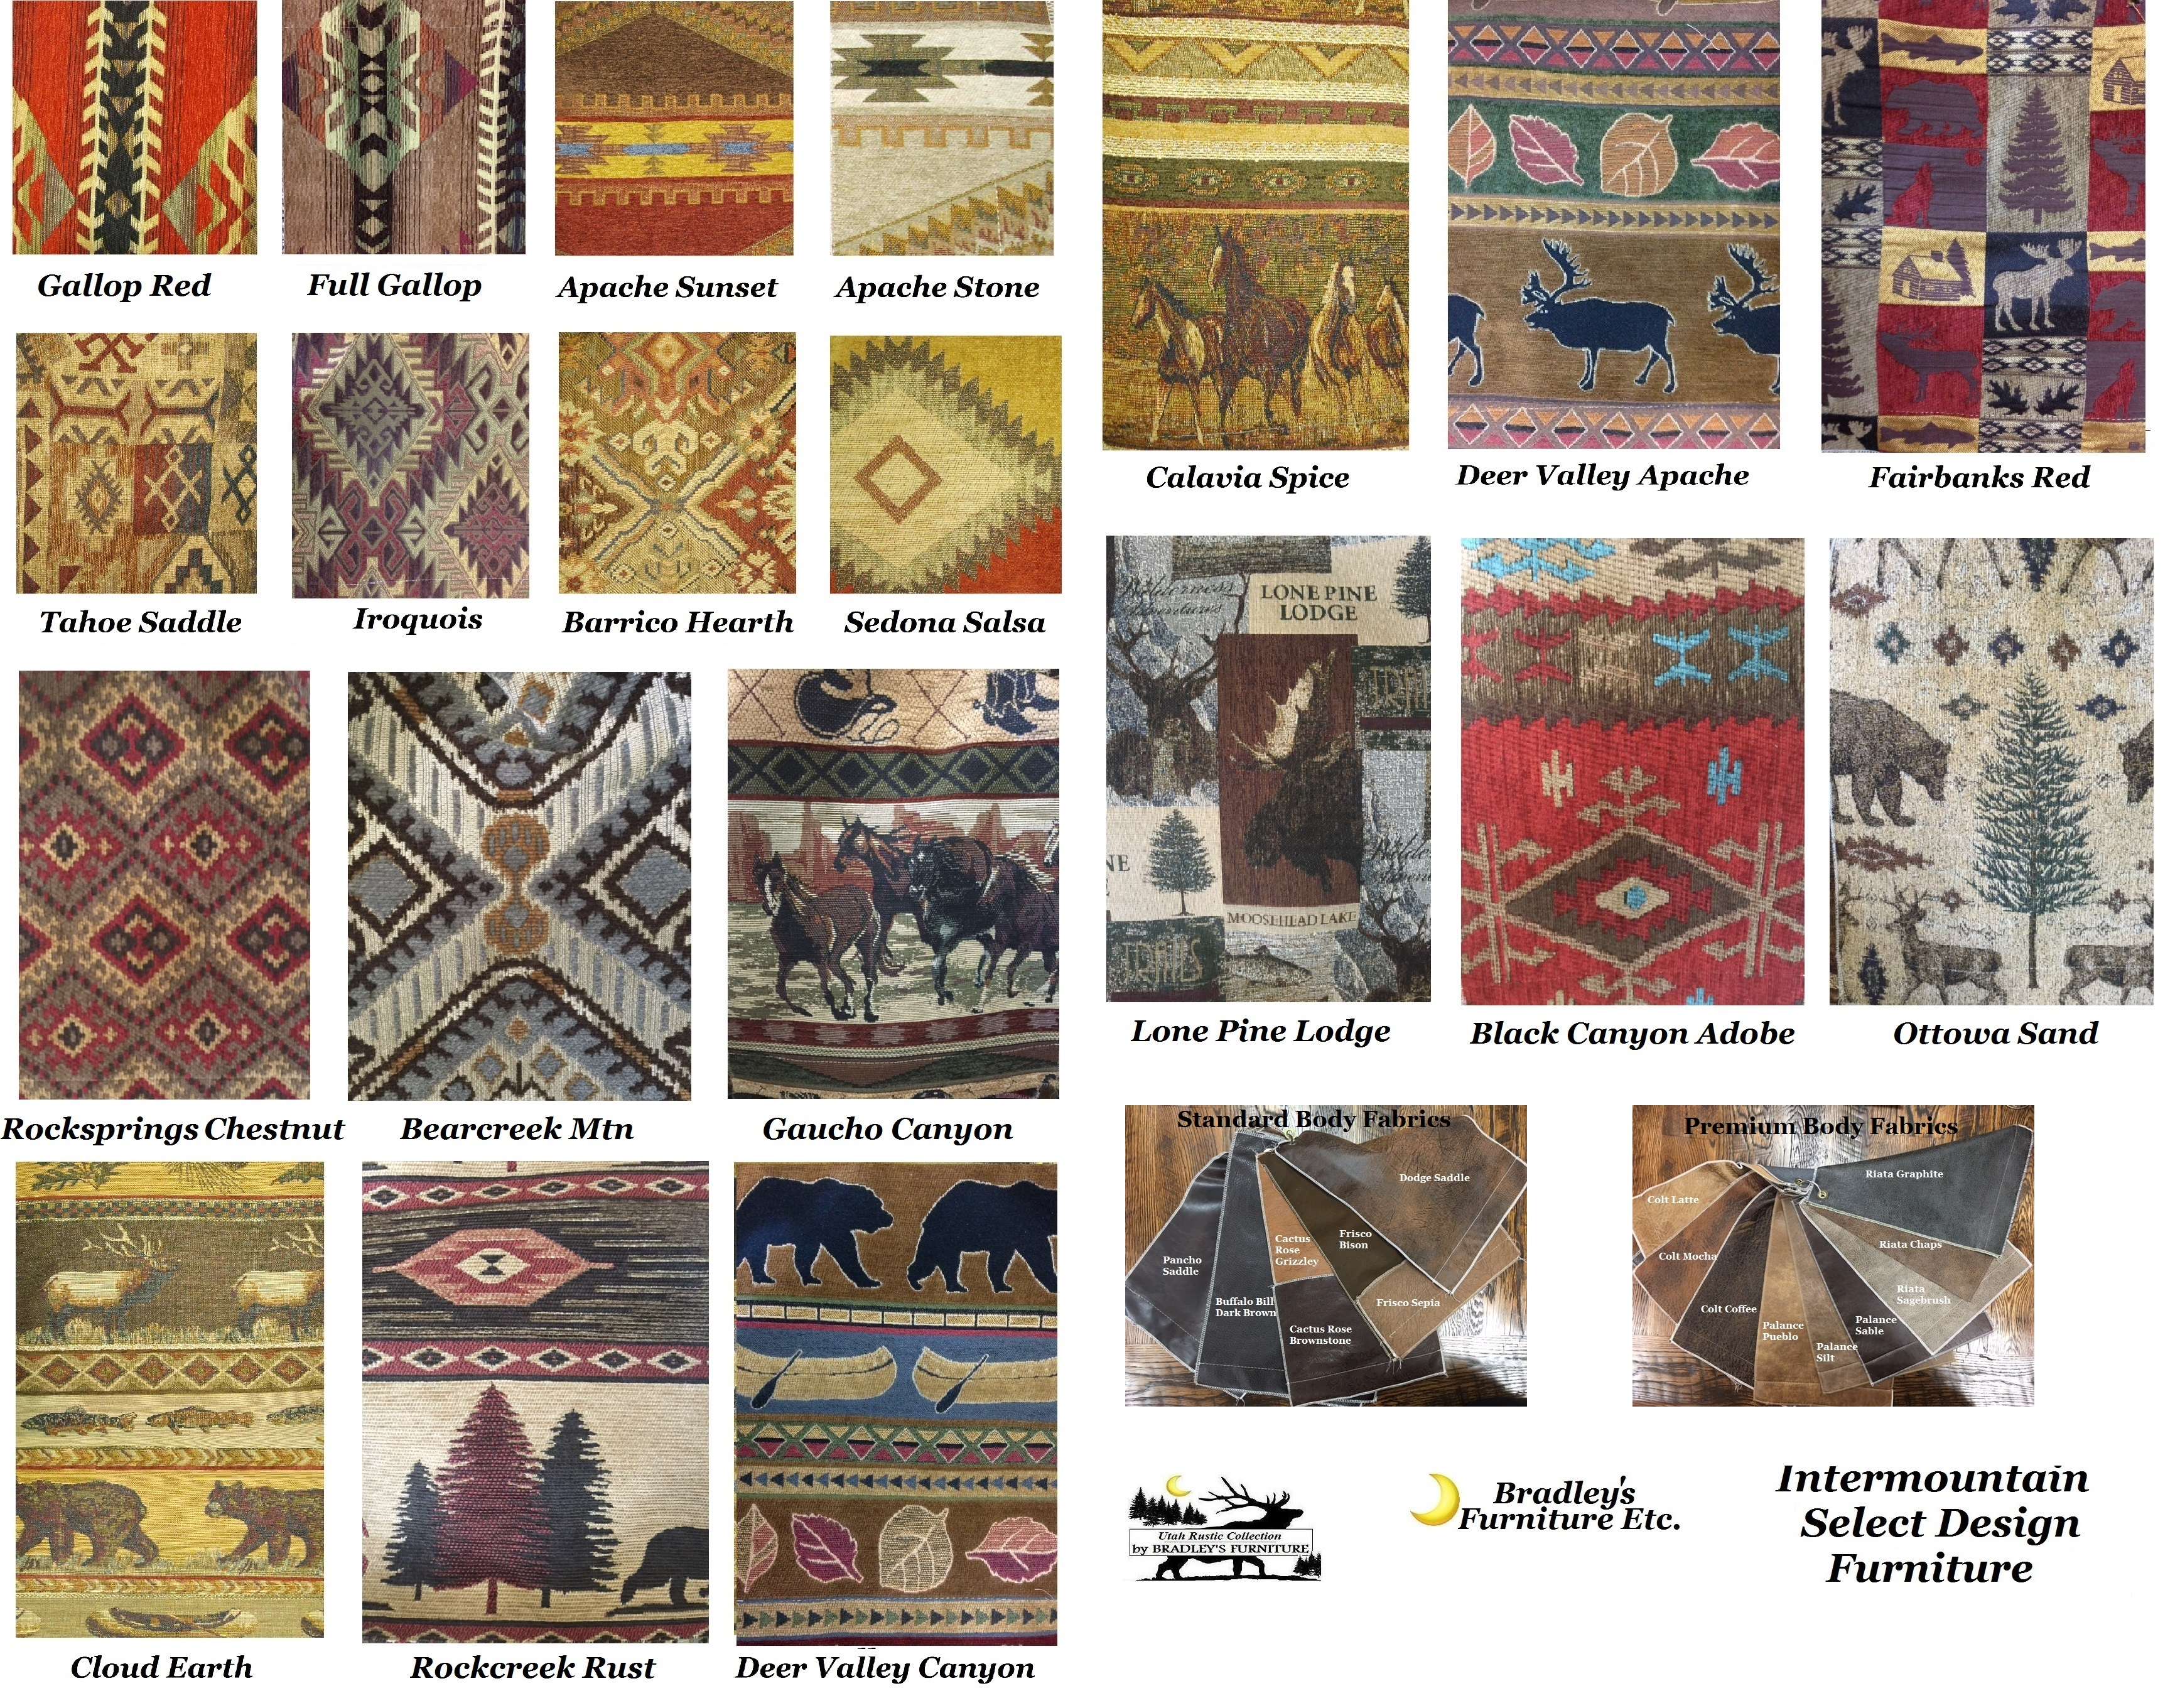 Bradley s Furniture Etc Intermountain Fabric Sectionals